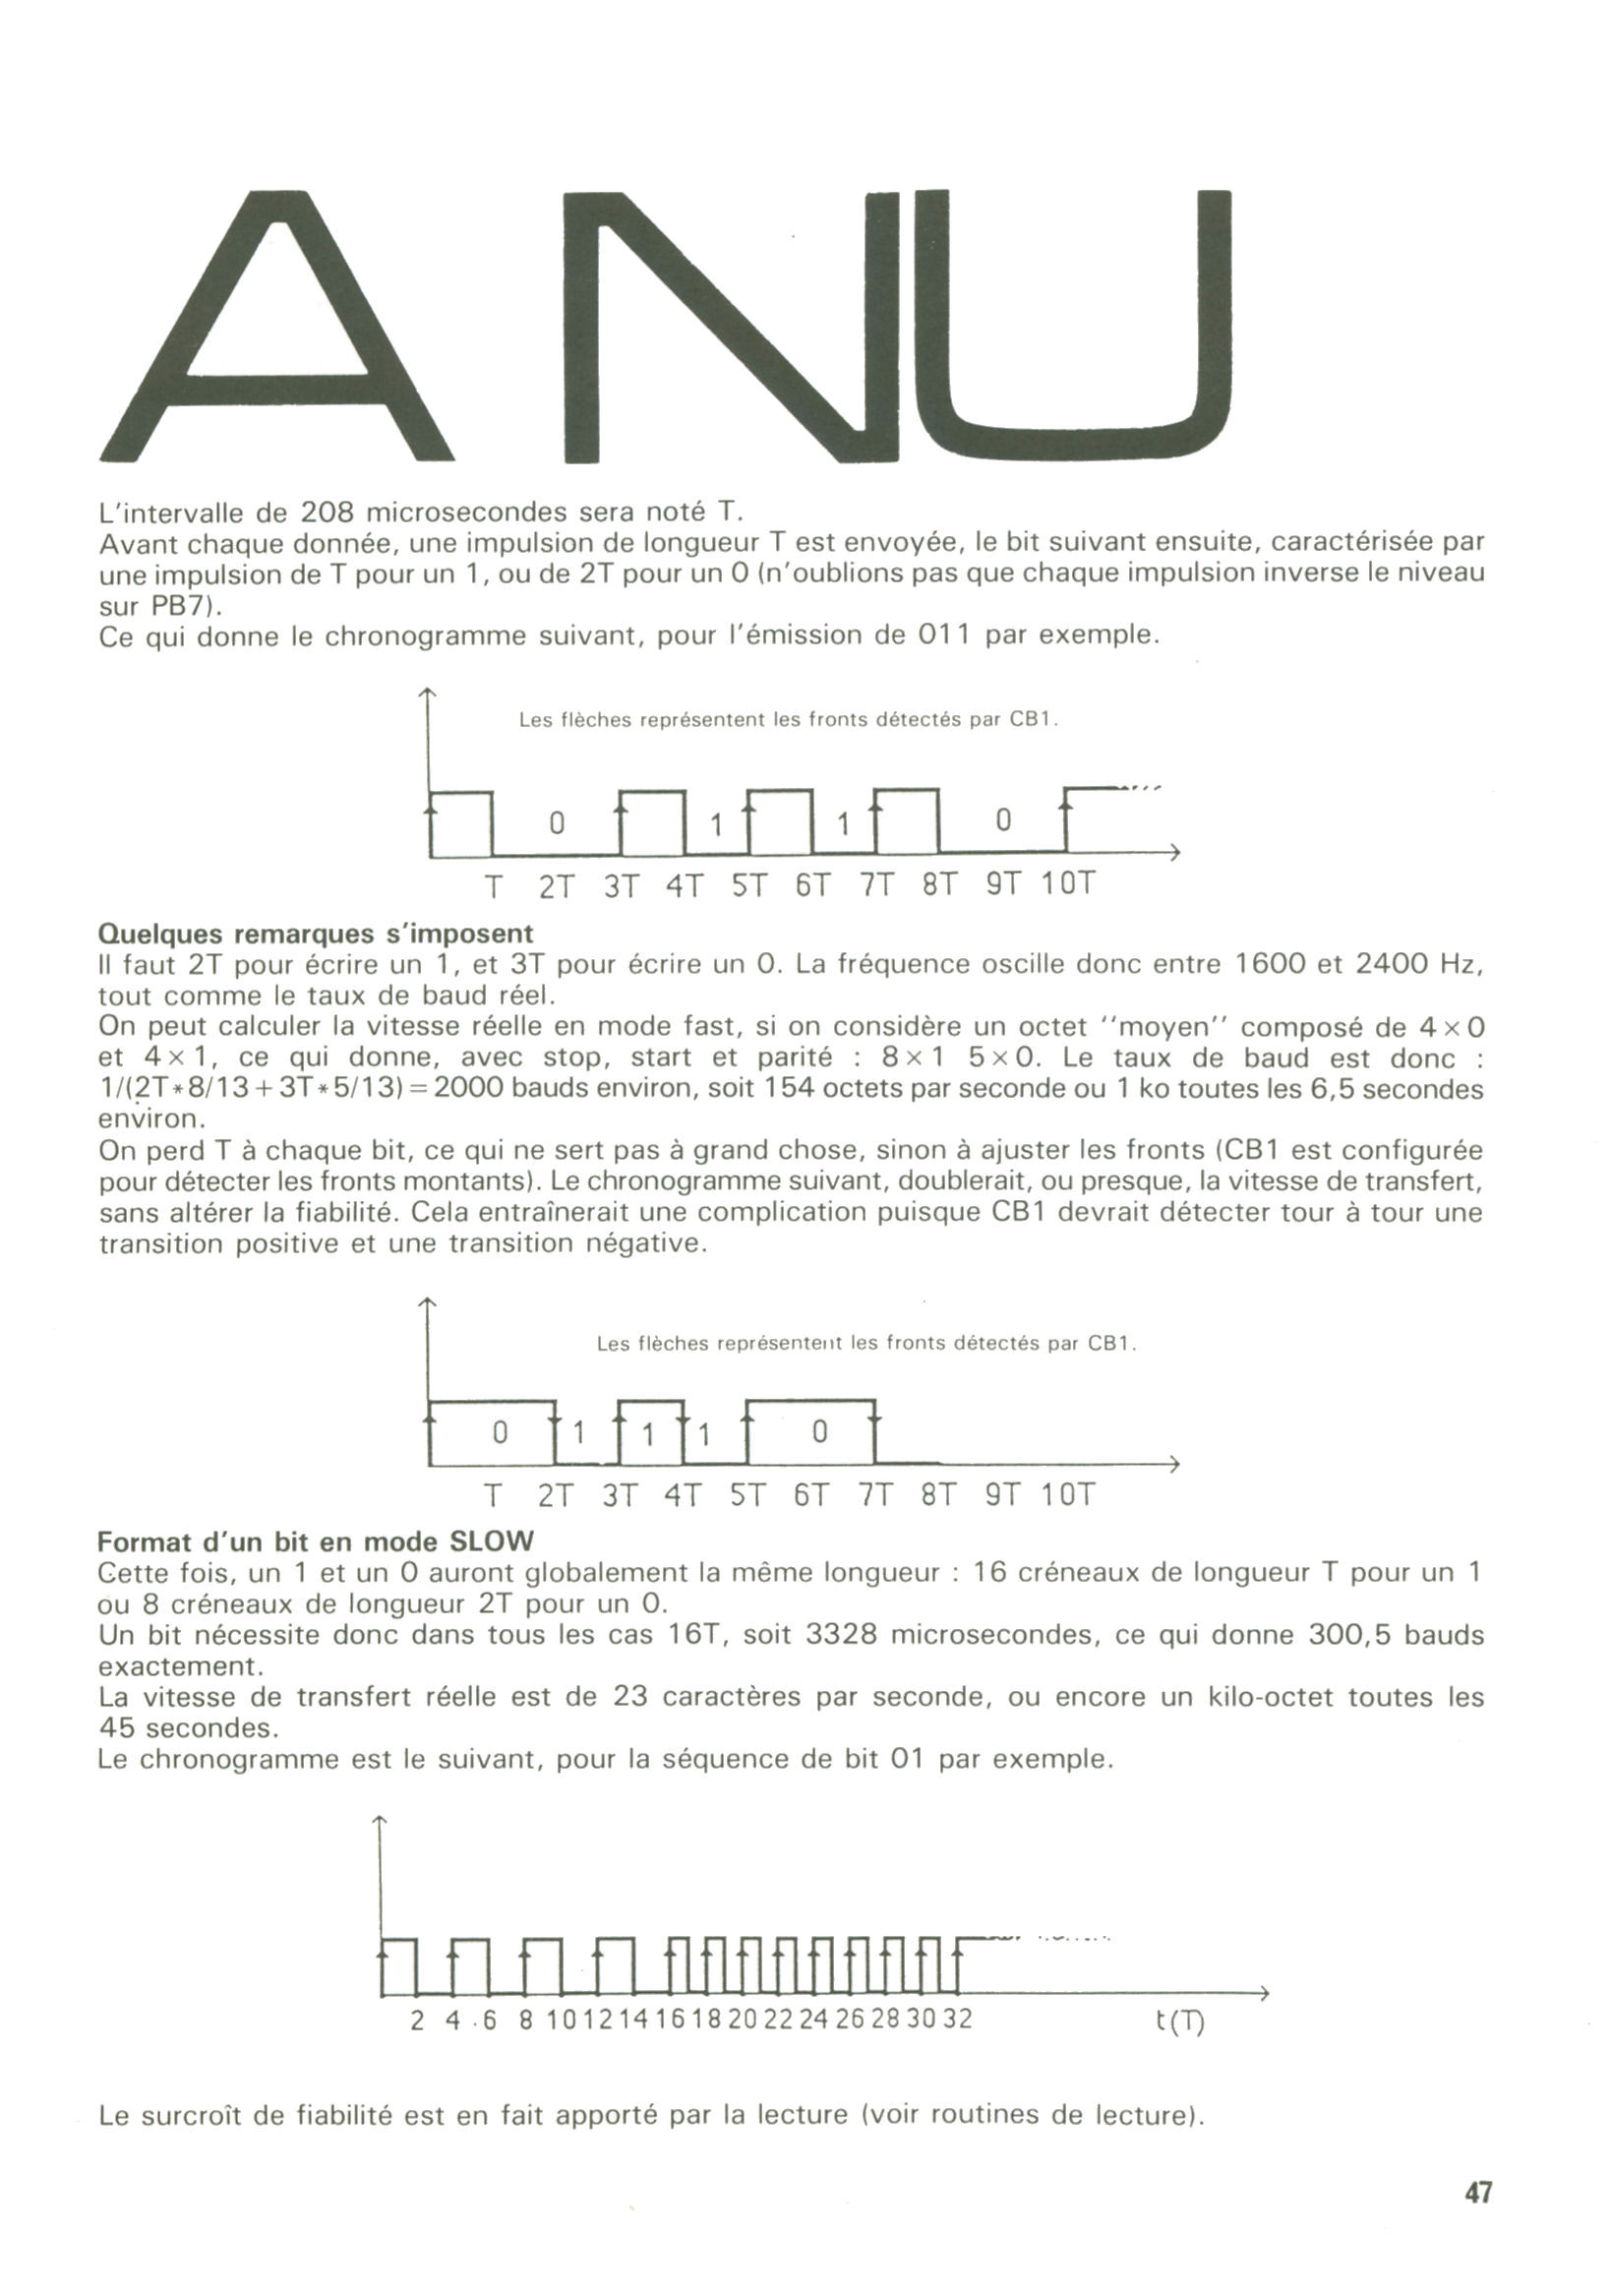 Theoric 19 - Avril-Mai 1986 - page 47.jpg